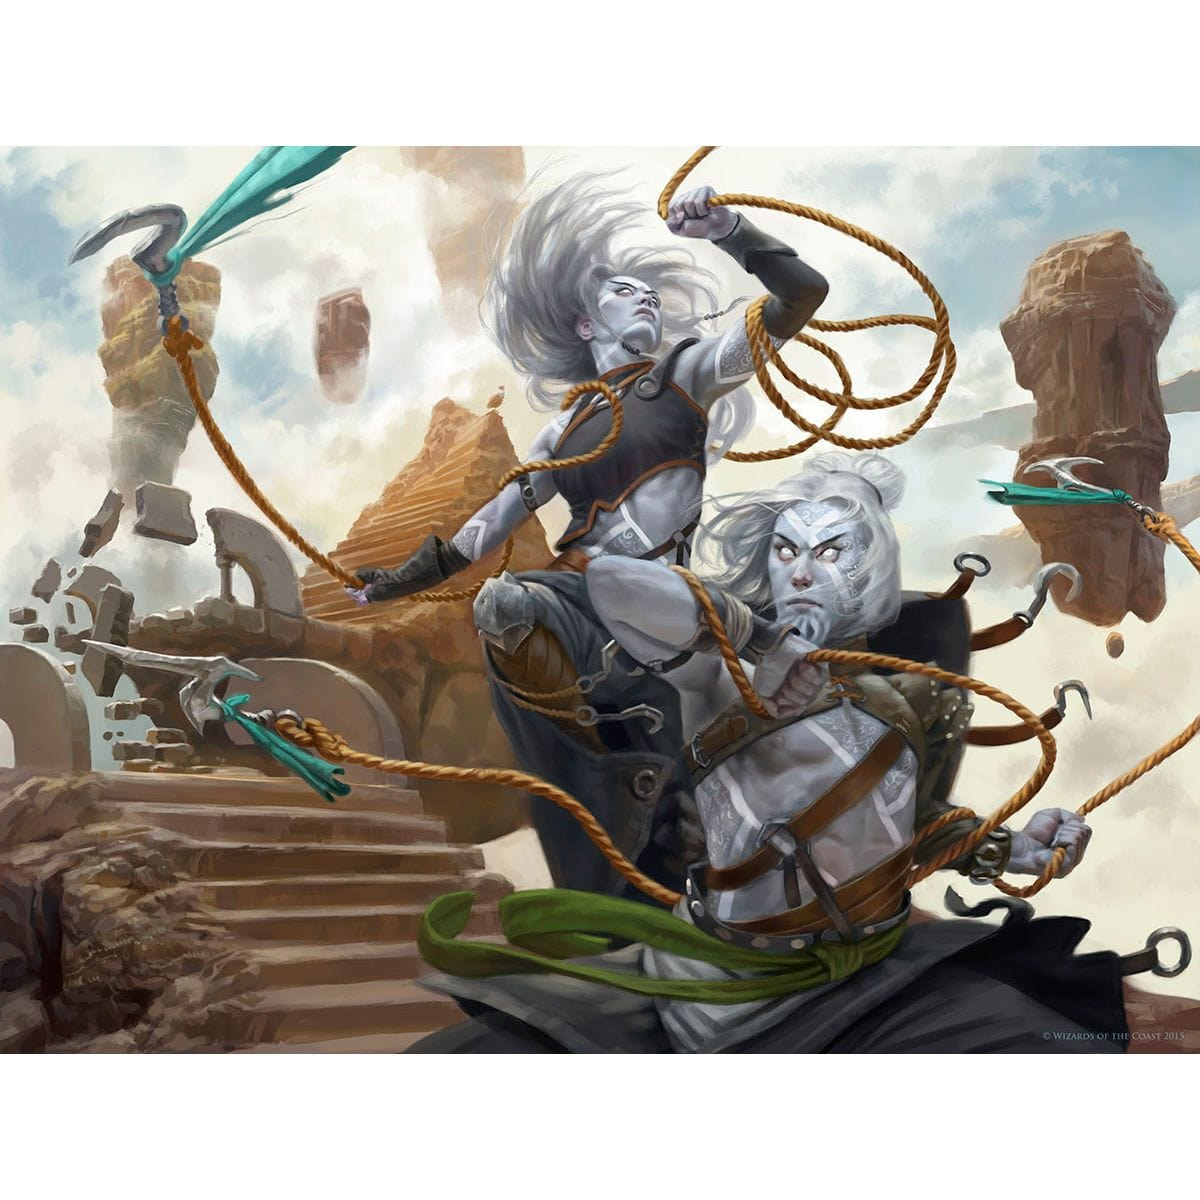 Kor Entanglers Print - Print - Original Magic Art - Accessories for Magic the Gathering and other card games